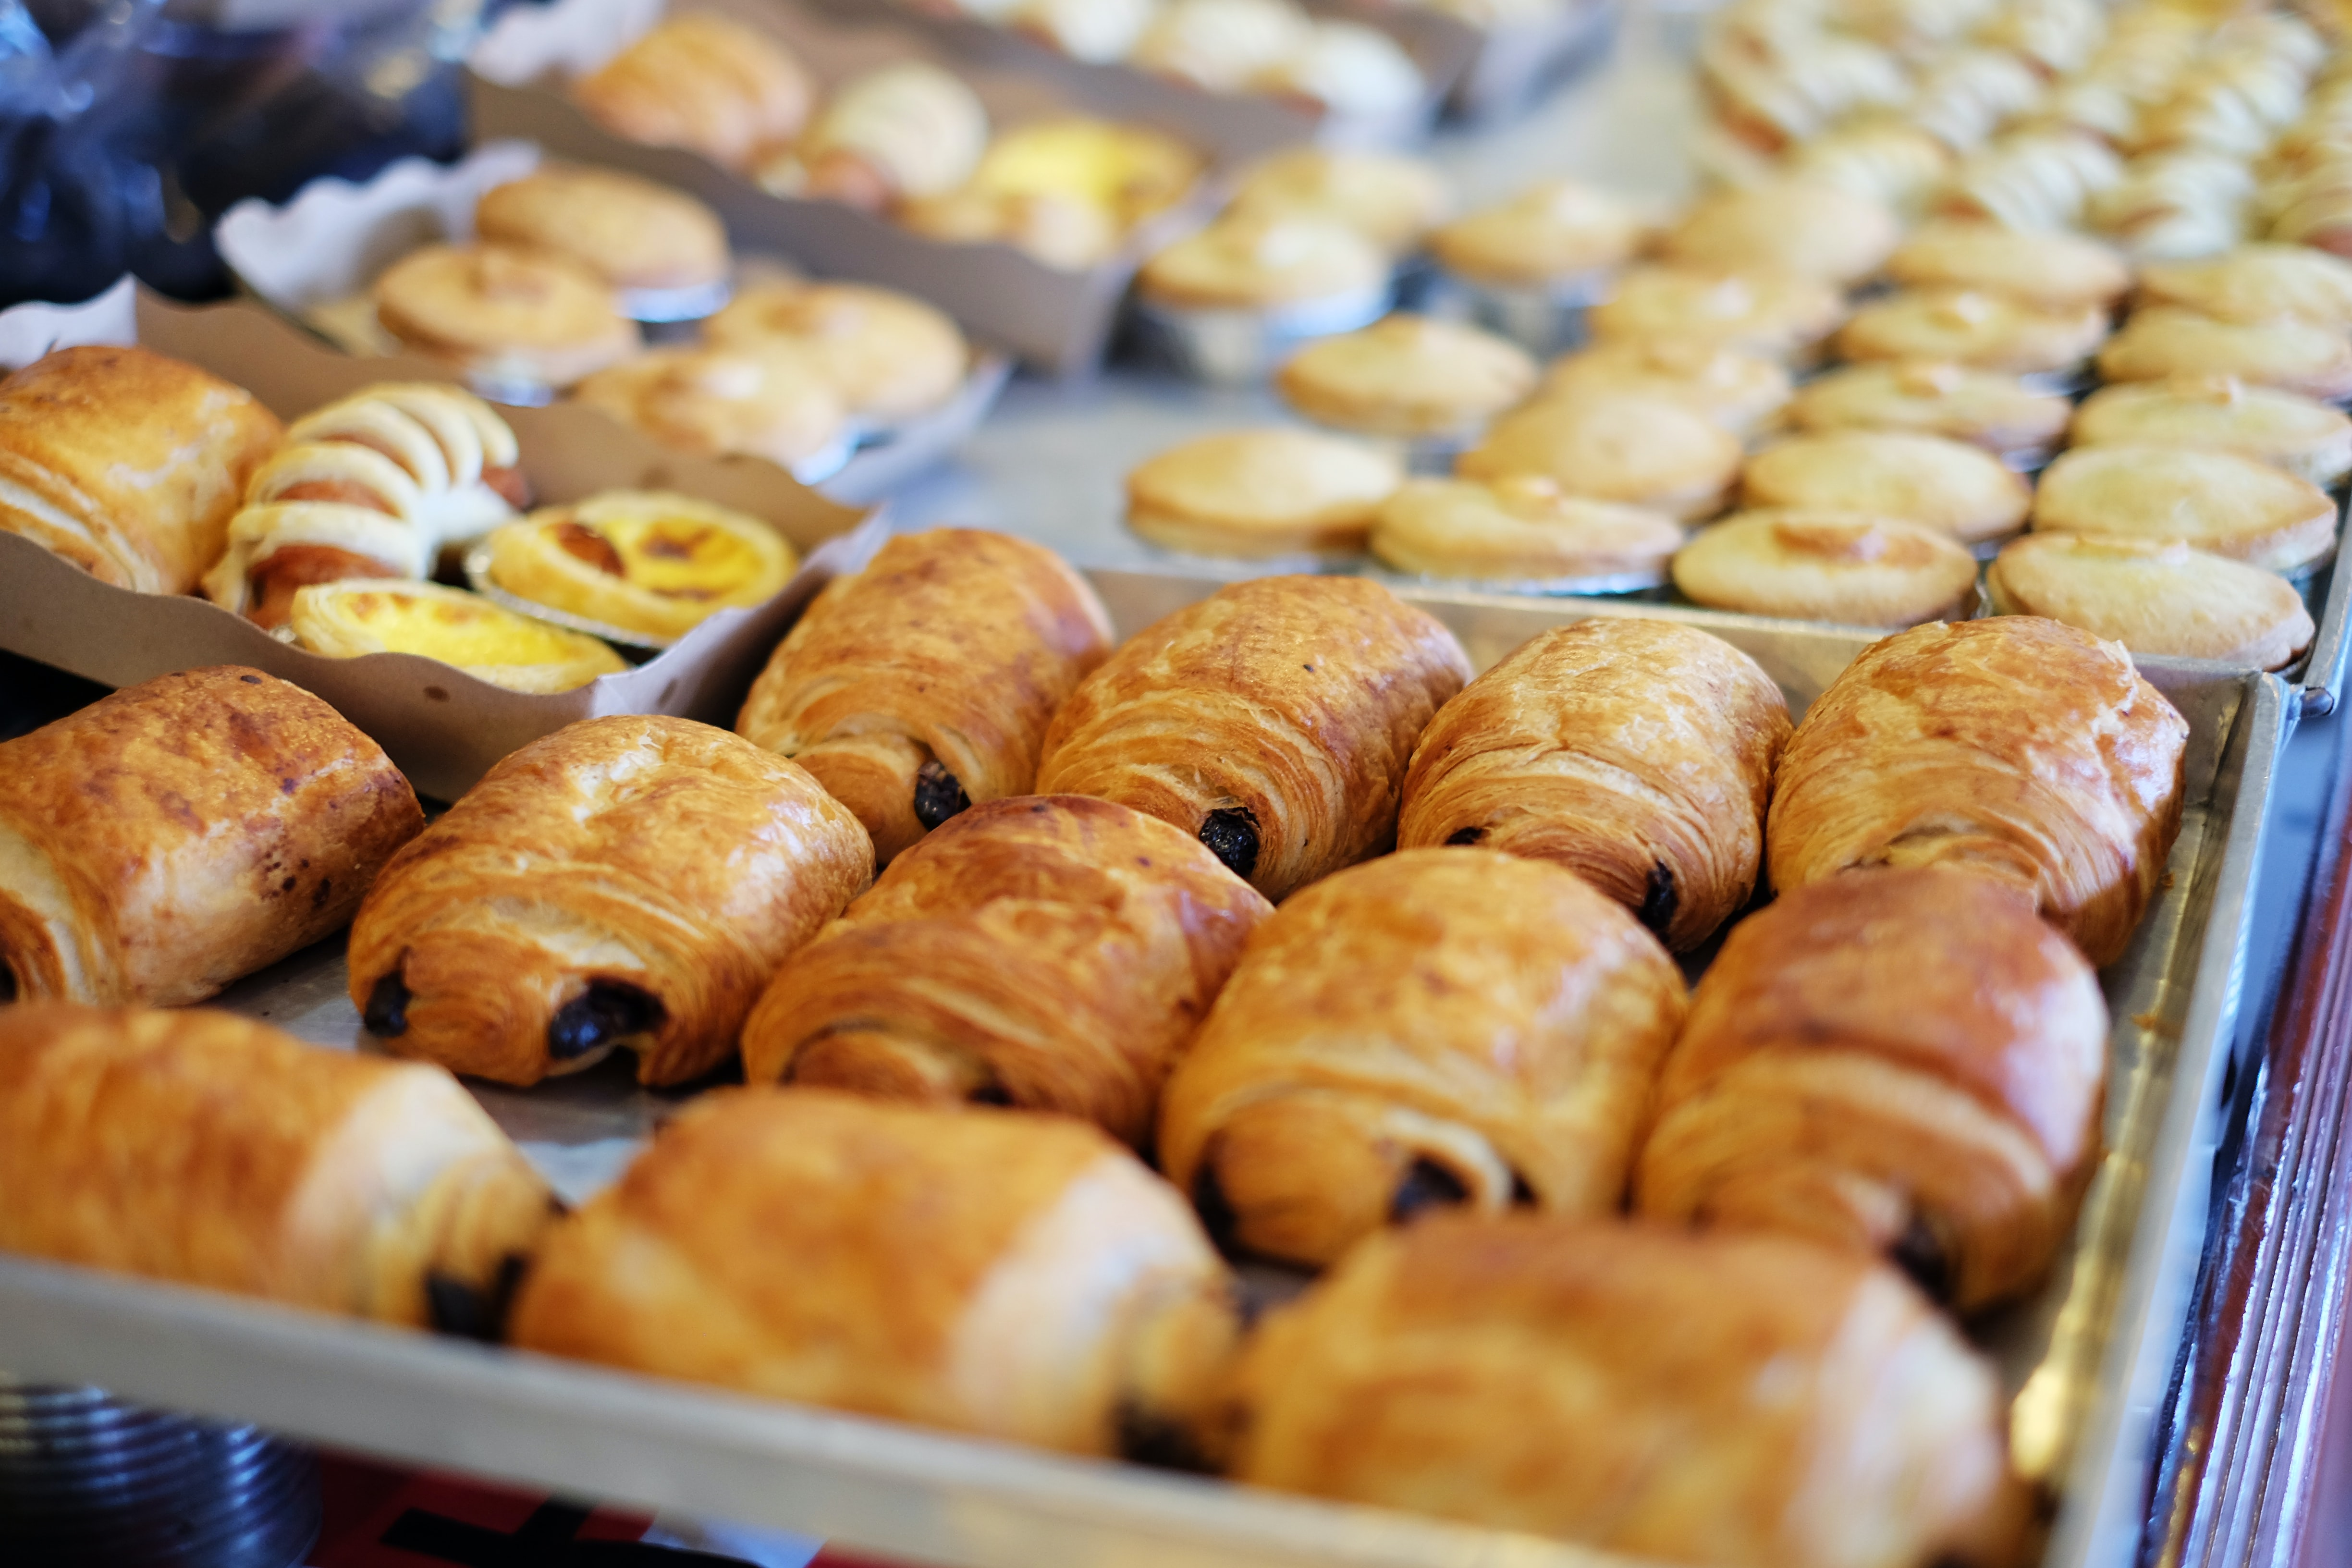 Trays at a French bakery with pain au chocolat